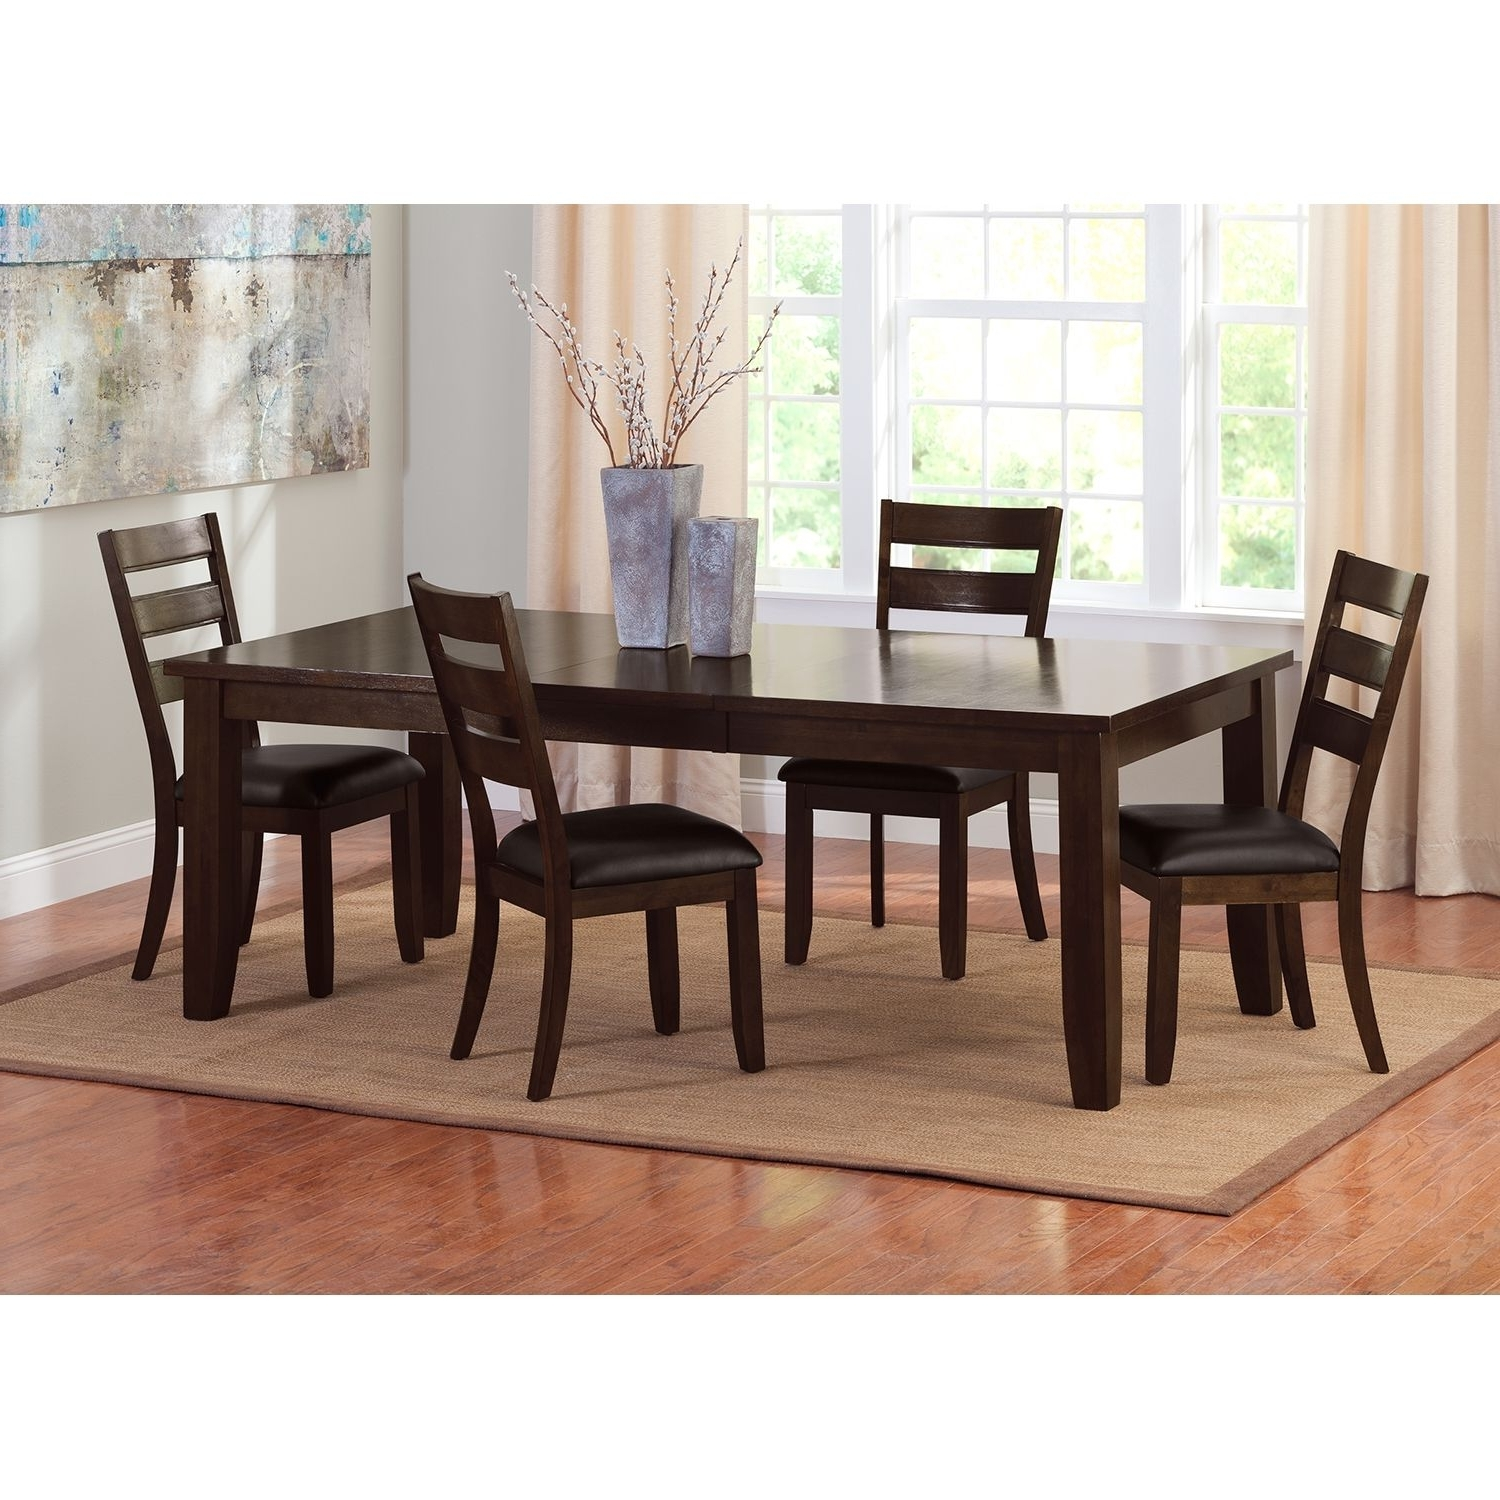 City Furniture Pertaining To Well Known Cora 7 Piece Dining Sets (View 7 of 25)